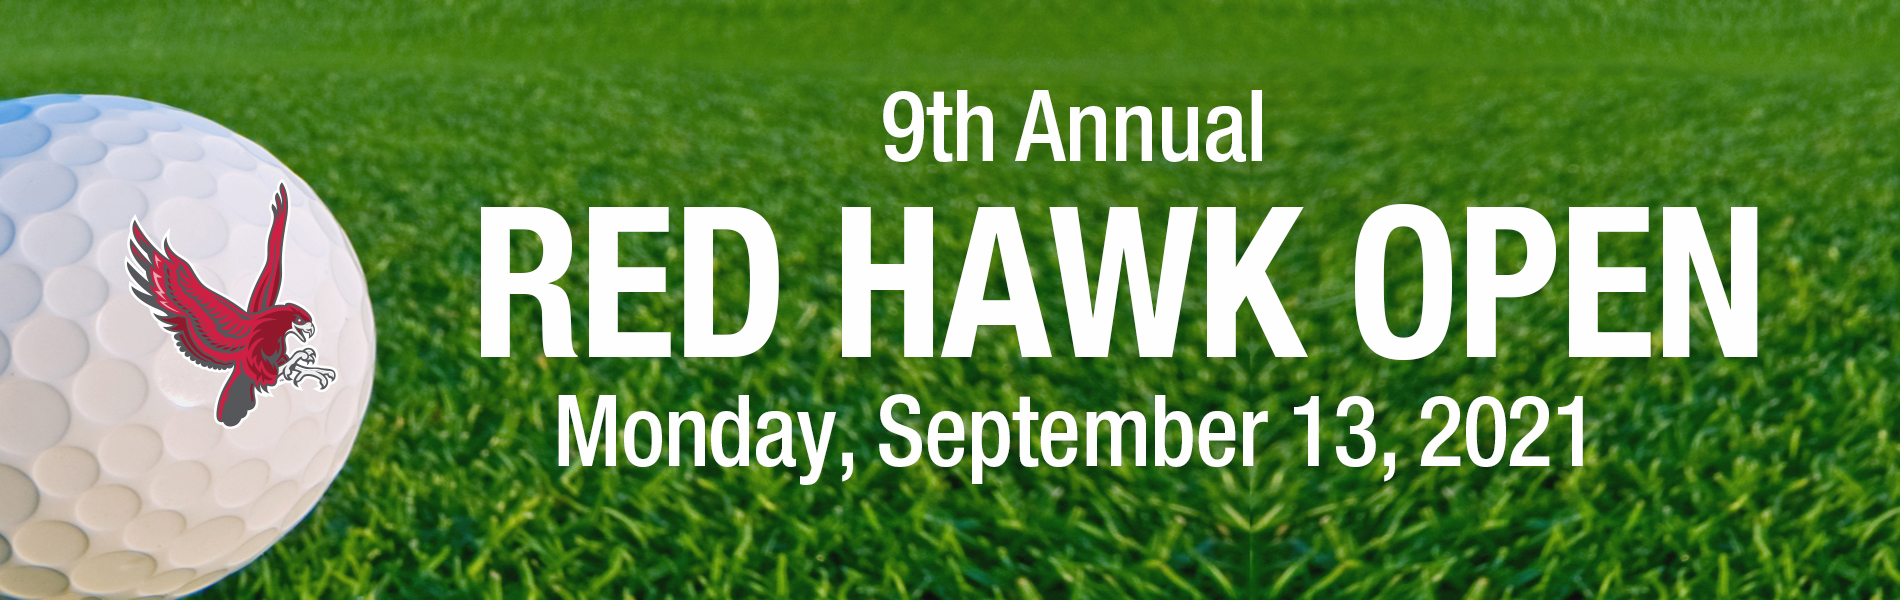 9th Annual Red Hawk Open - Monday, September 13, 2021